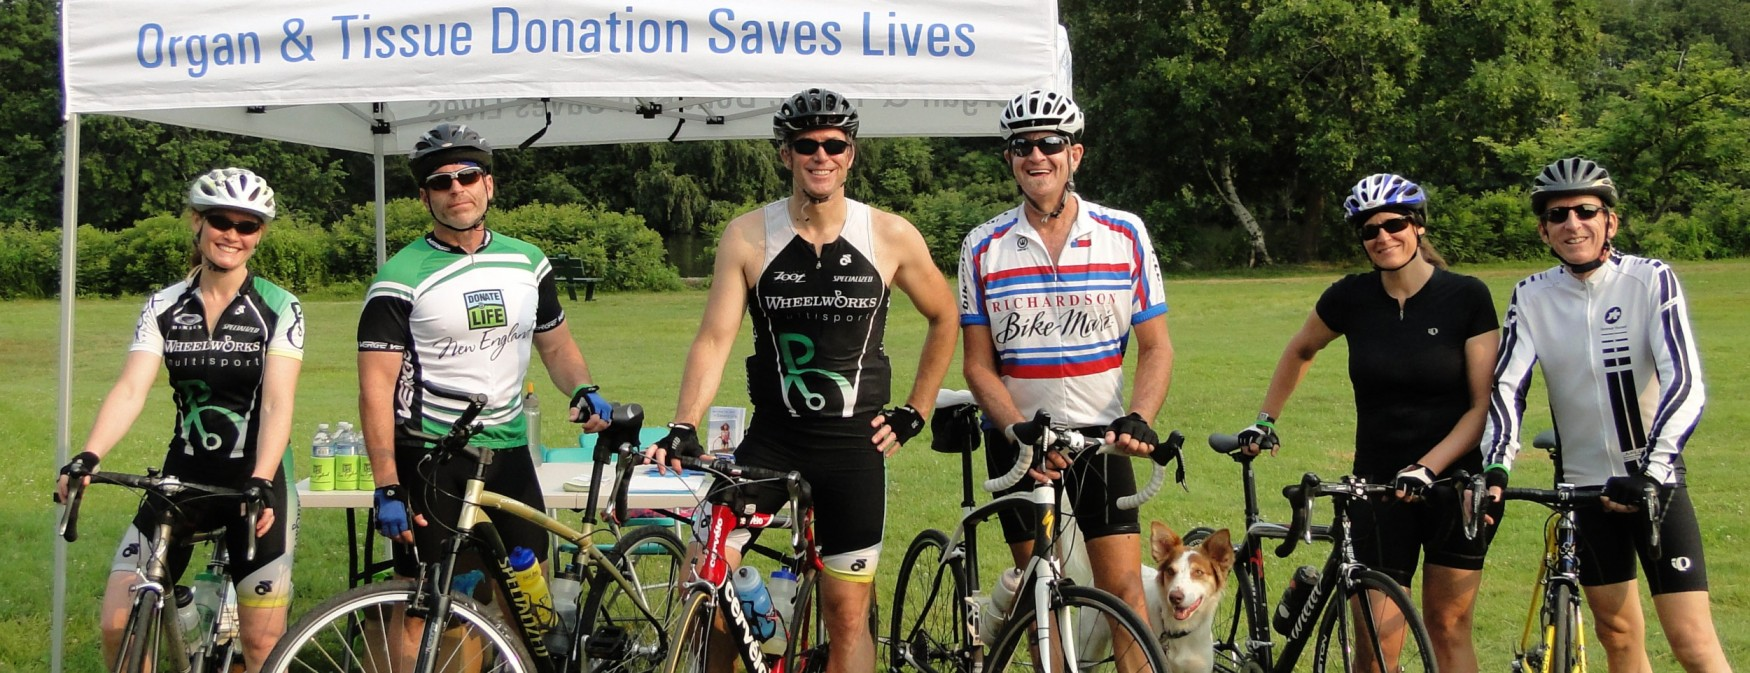 Cycling for Donation Awareness